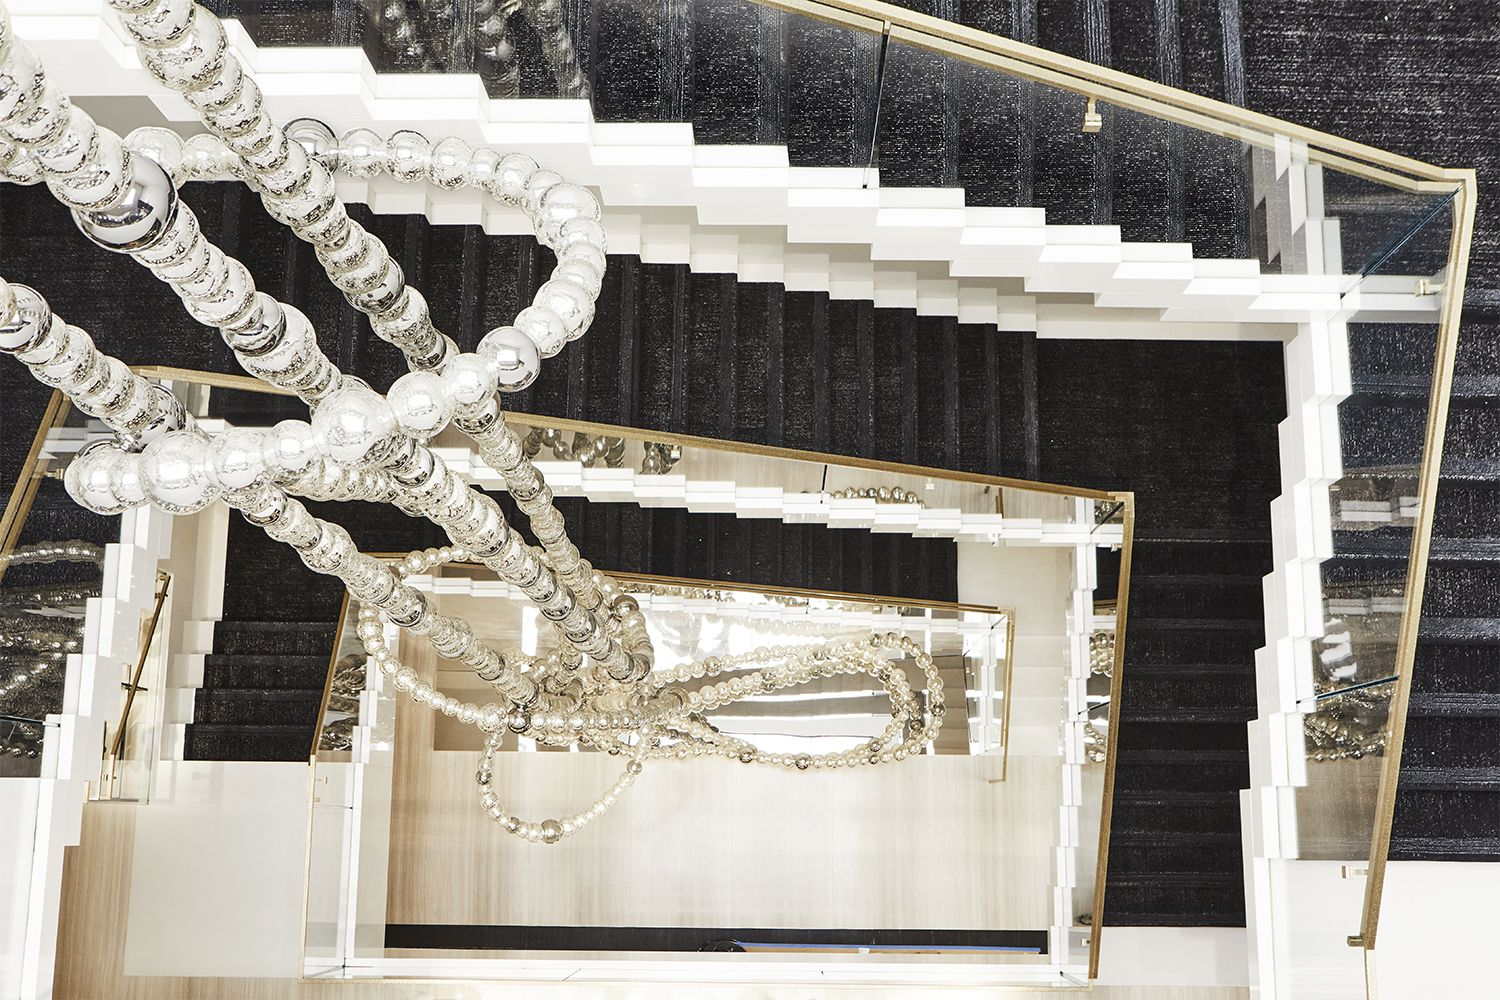 The sculpture, designed by Jean-Michel Othoniel, extends down a central staircase within the store.